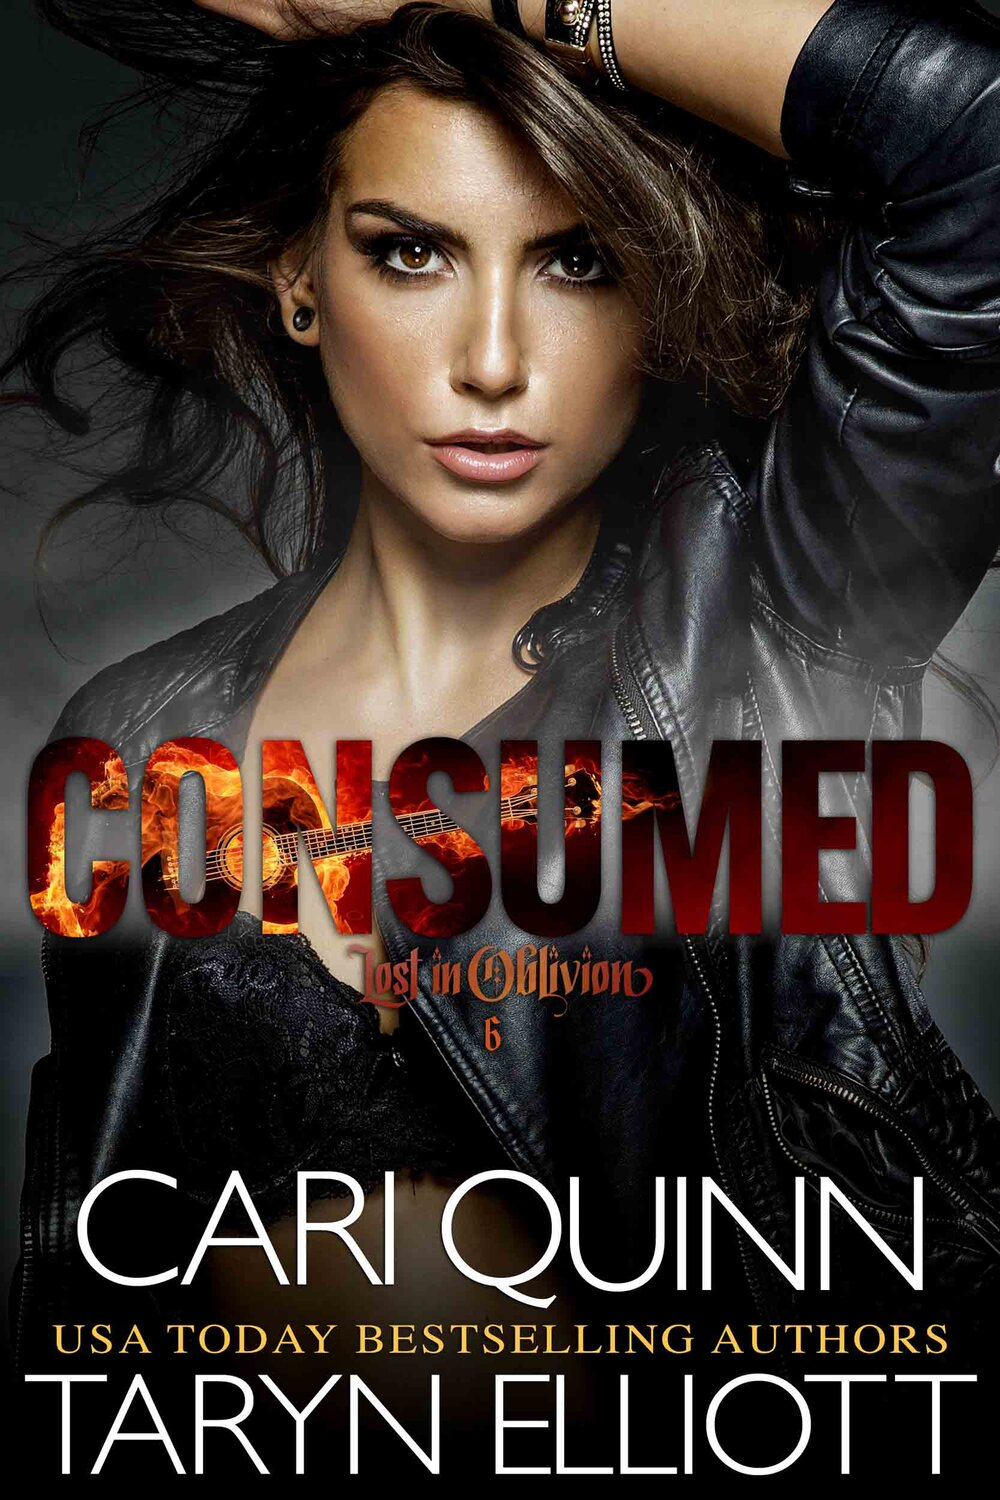 Cari Quinn & Taryn Elliott Lost In Oblivion Consumed.jpg